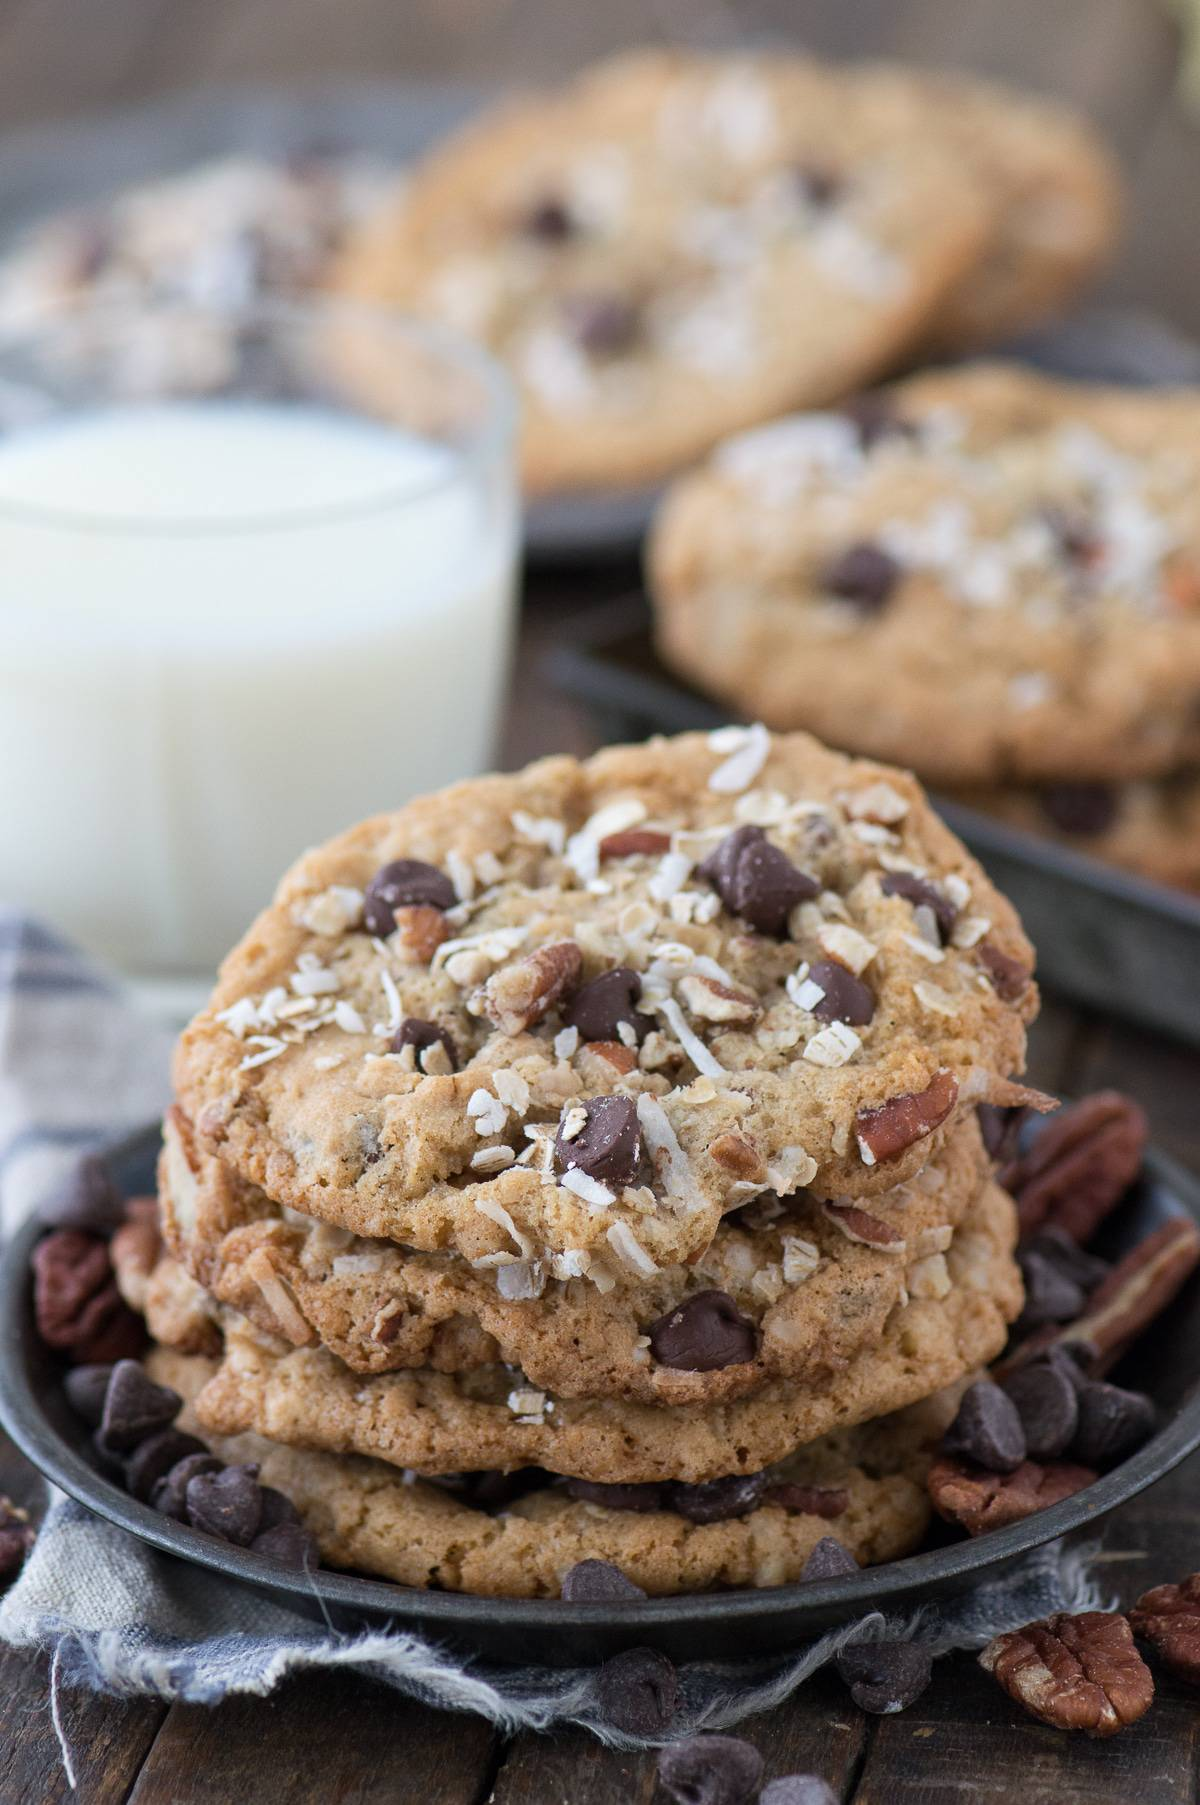 Cowboy cookies are one of the BEST cookies I've ever had! They are loaded with oats, chocolate chips, coconut and pecans, plus require no chilling!